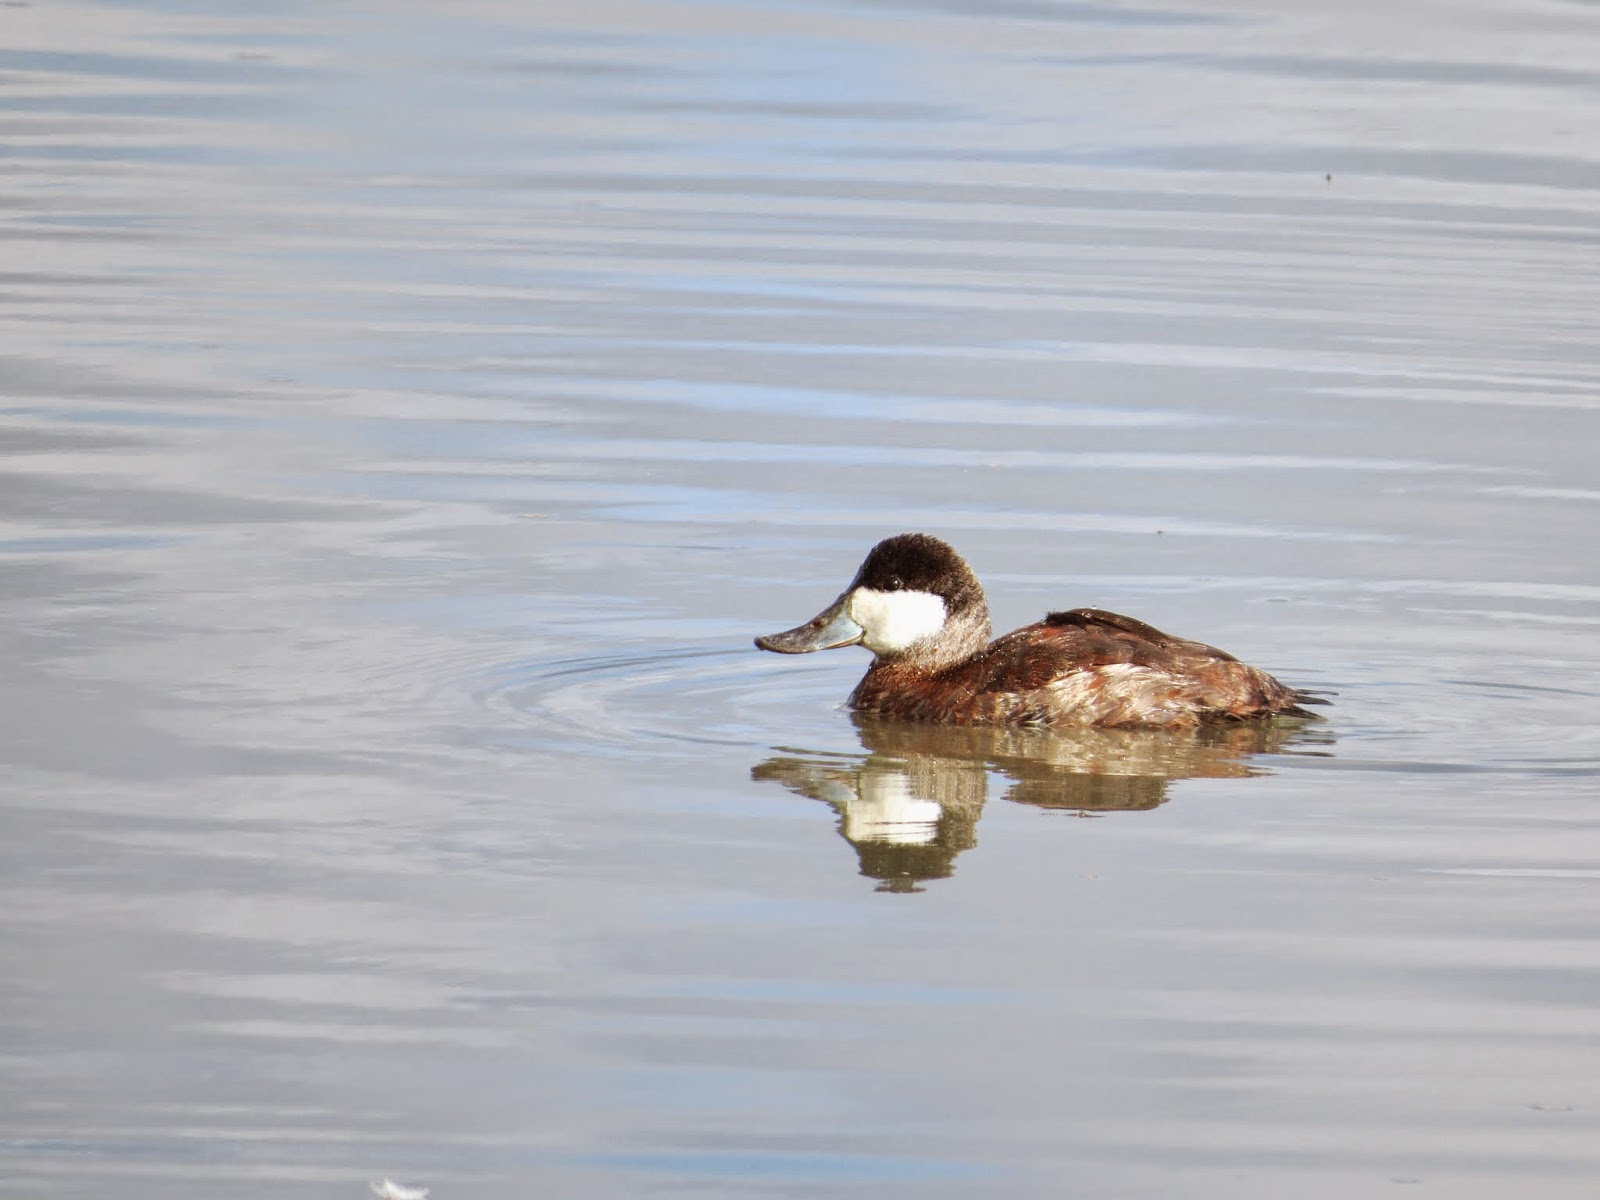 Ruddy duck in the Palo Alto Baylands